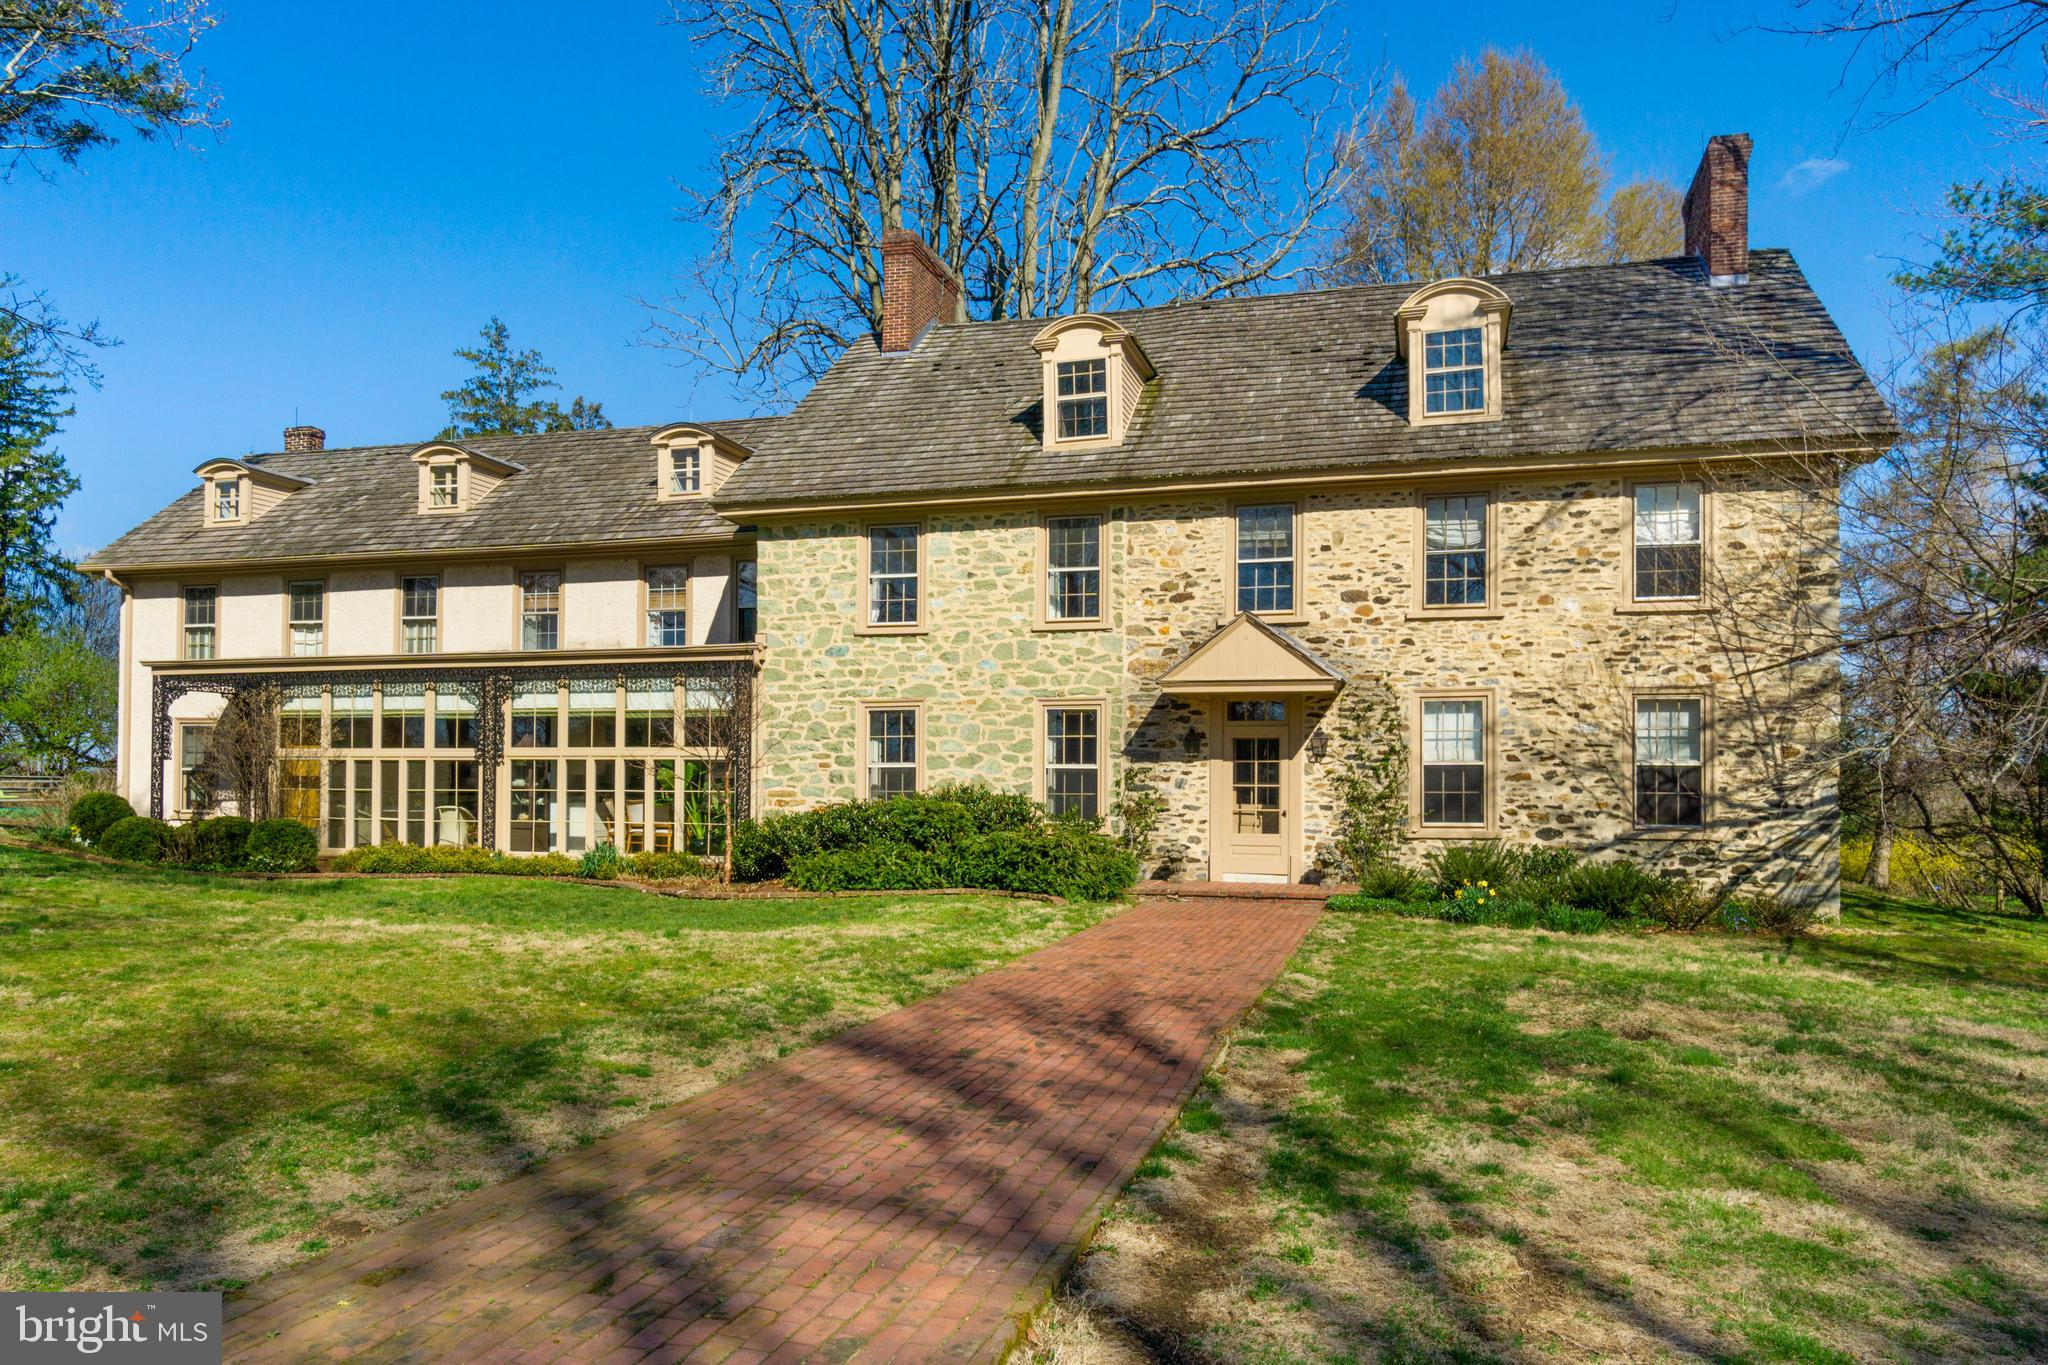 1200 S CONCORD ROAD, WEST CHESTER, PA 19382